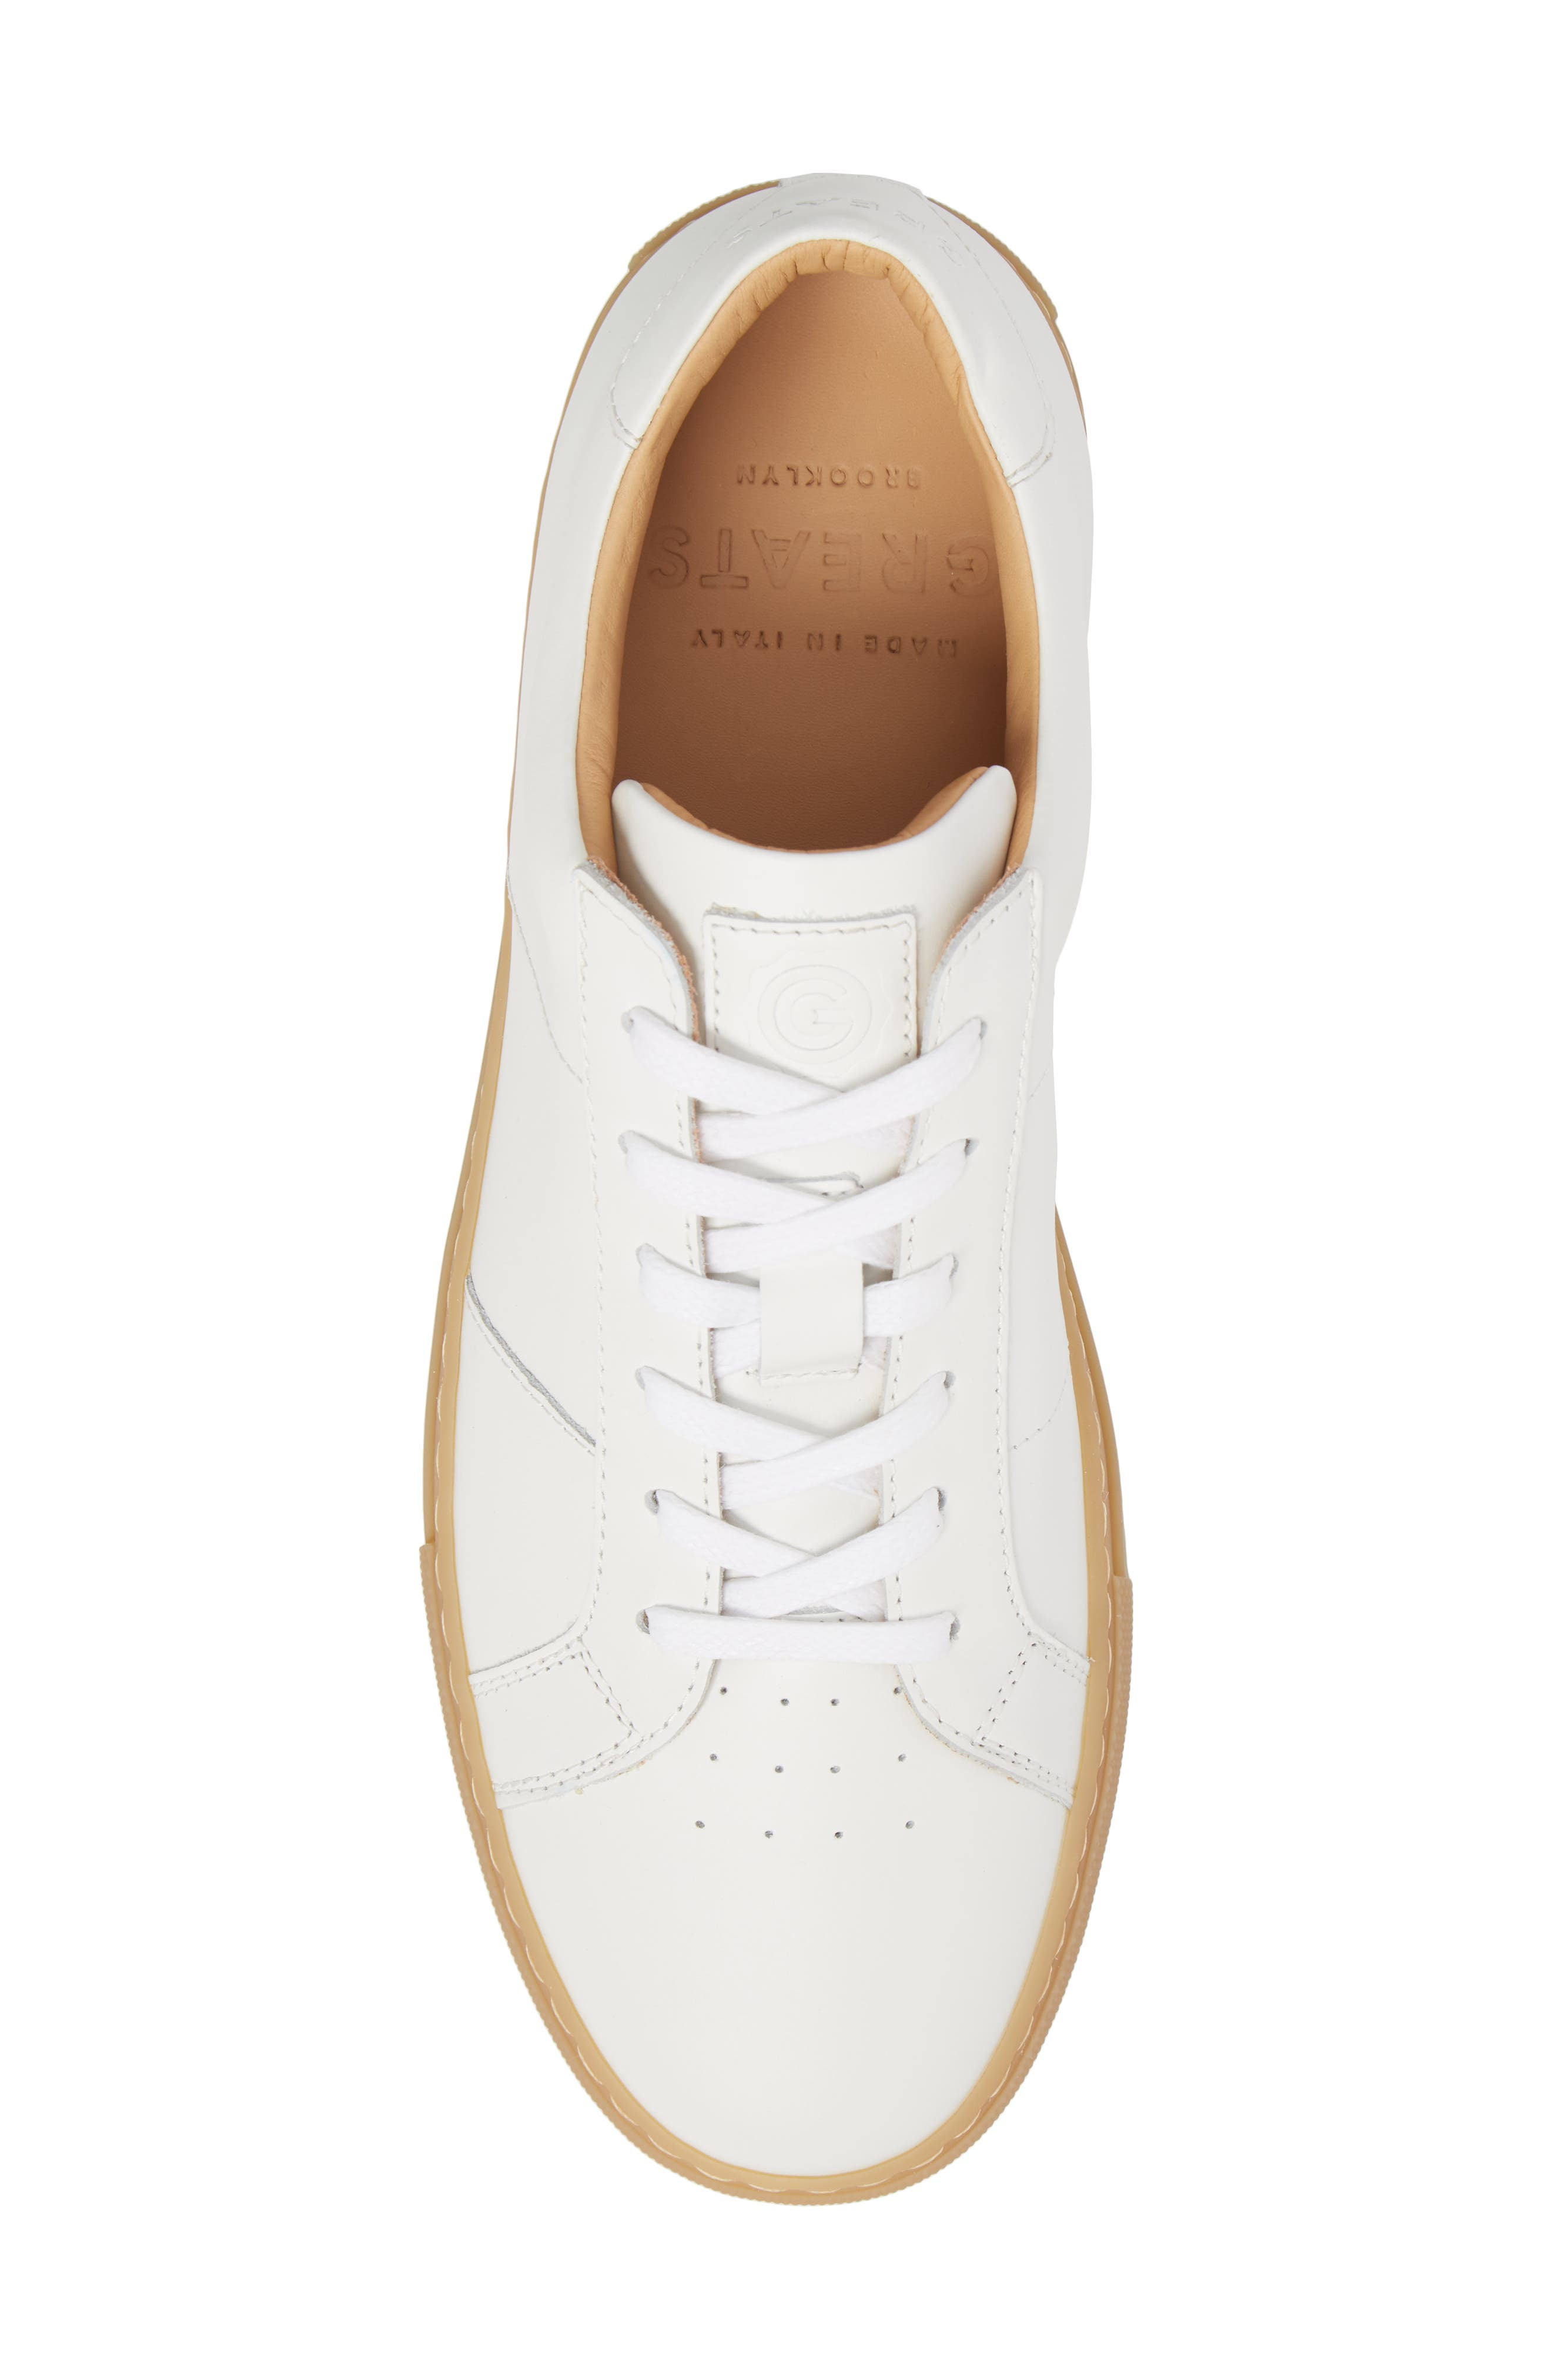 Royale Reverse Sneaker,                             Alternate thumbnail 5, color,                             WHITE/ GUM